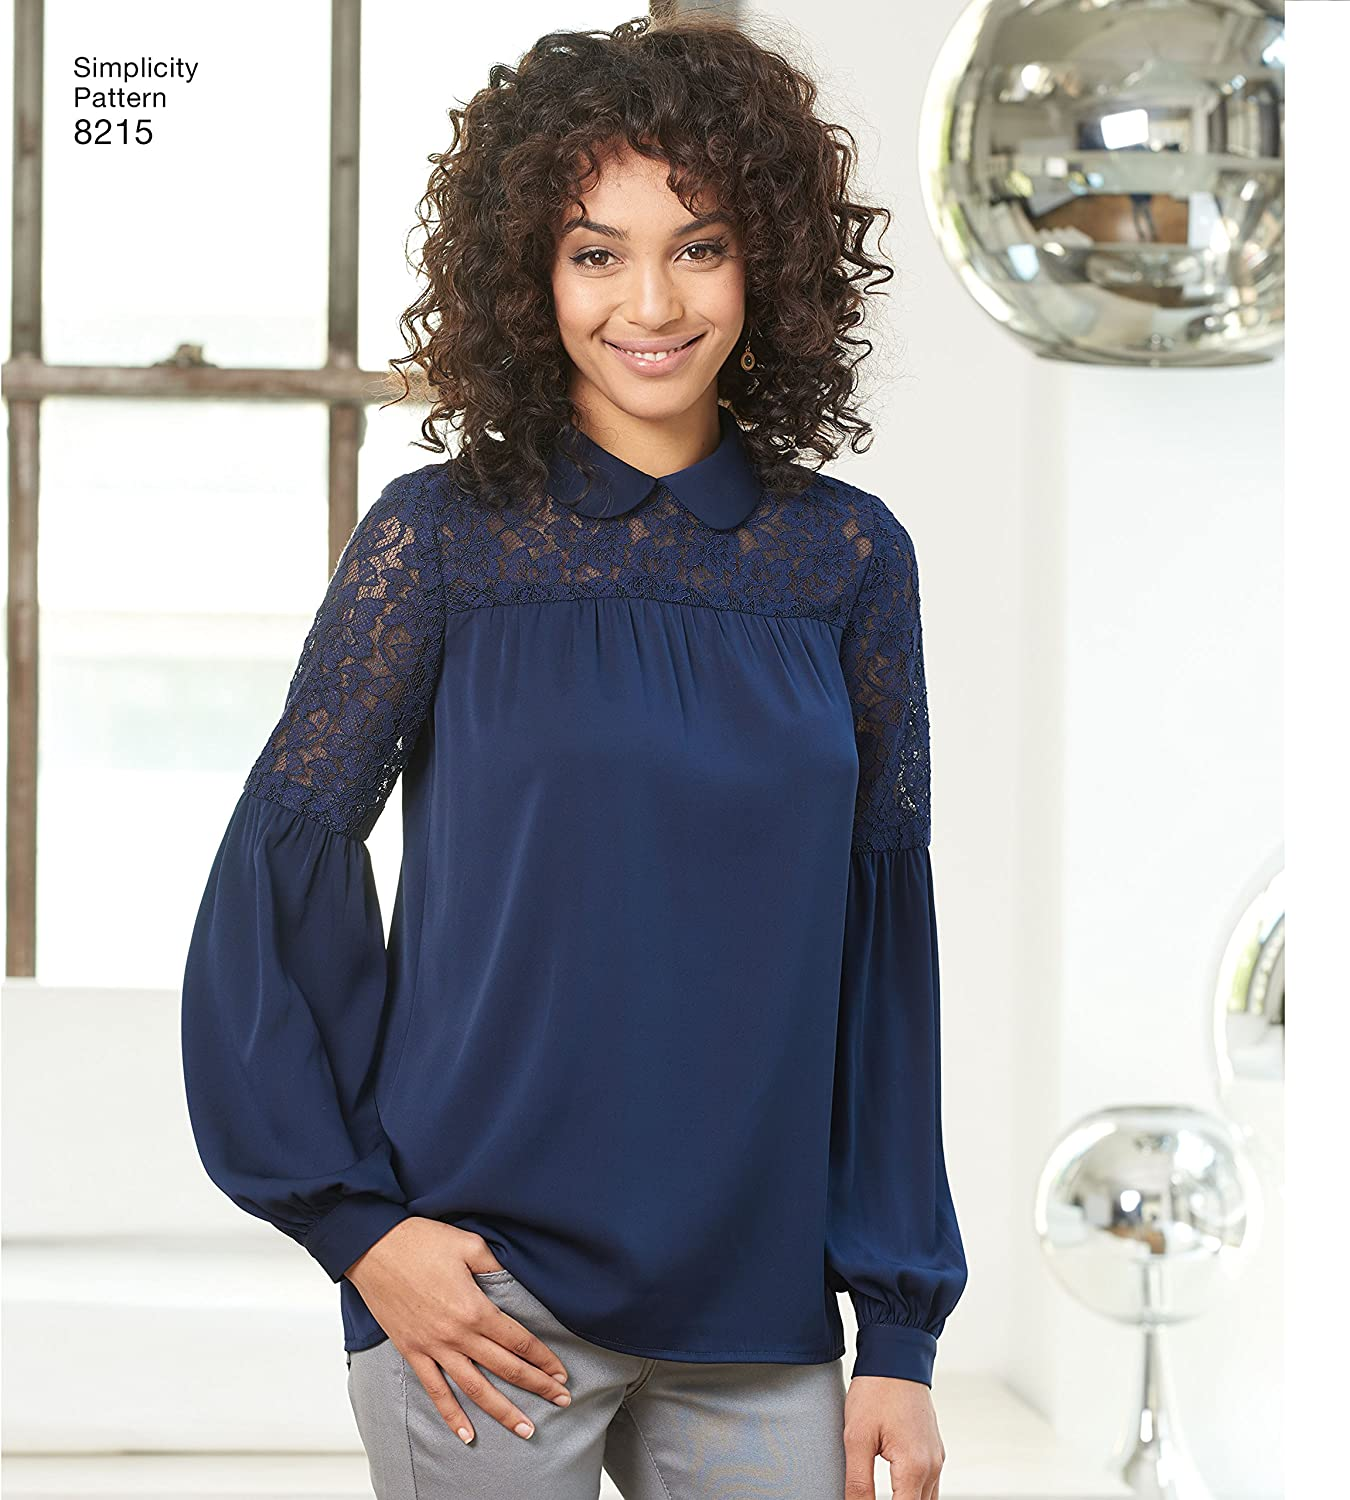 Sizes 4-12 Simplicity 8215 Womens Blouse Sewing Patterns